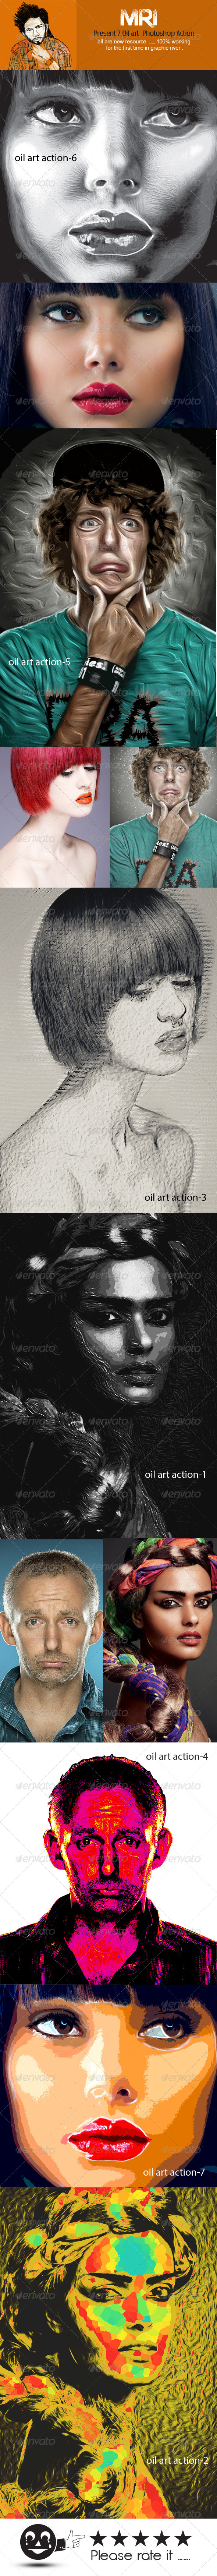 GraphicRiver Pure Oil Art 7784333